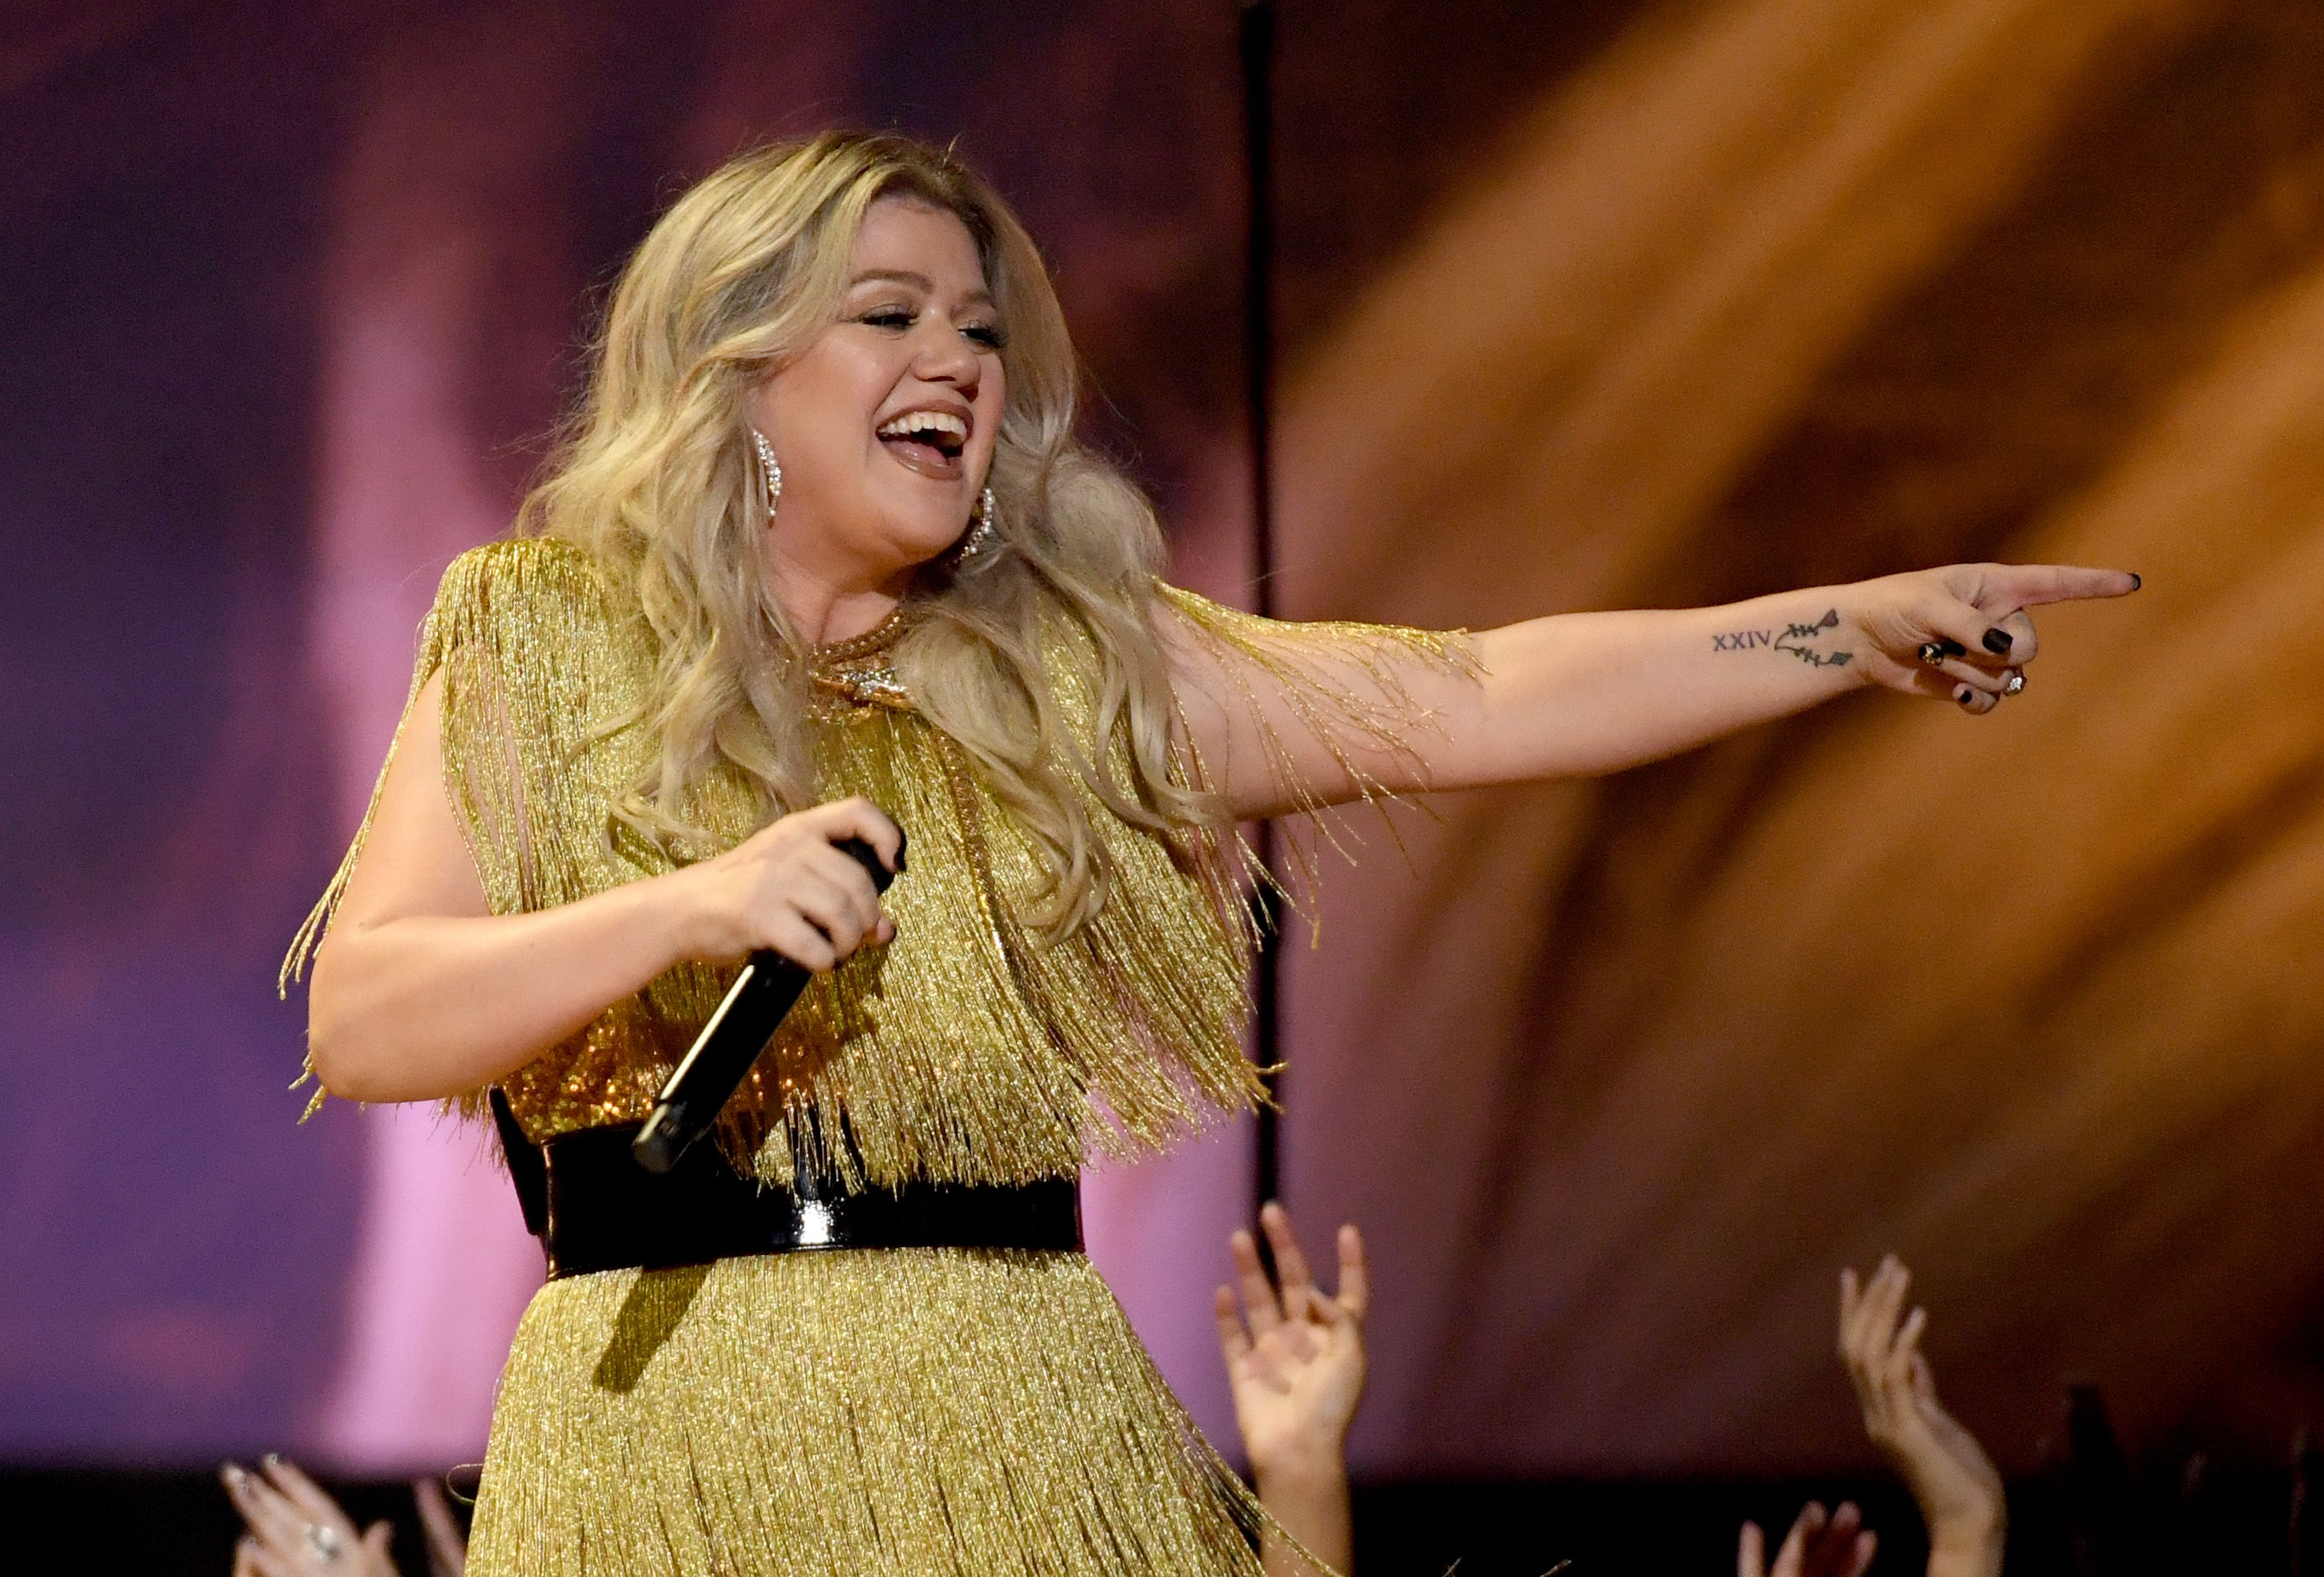 Kelly Clarkson pointing in gold fringe dress